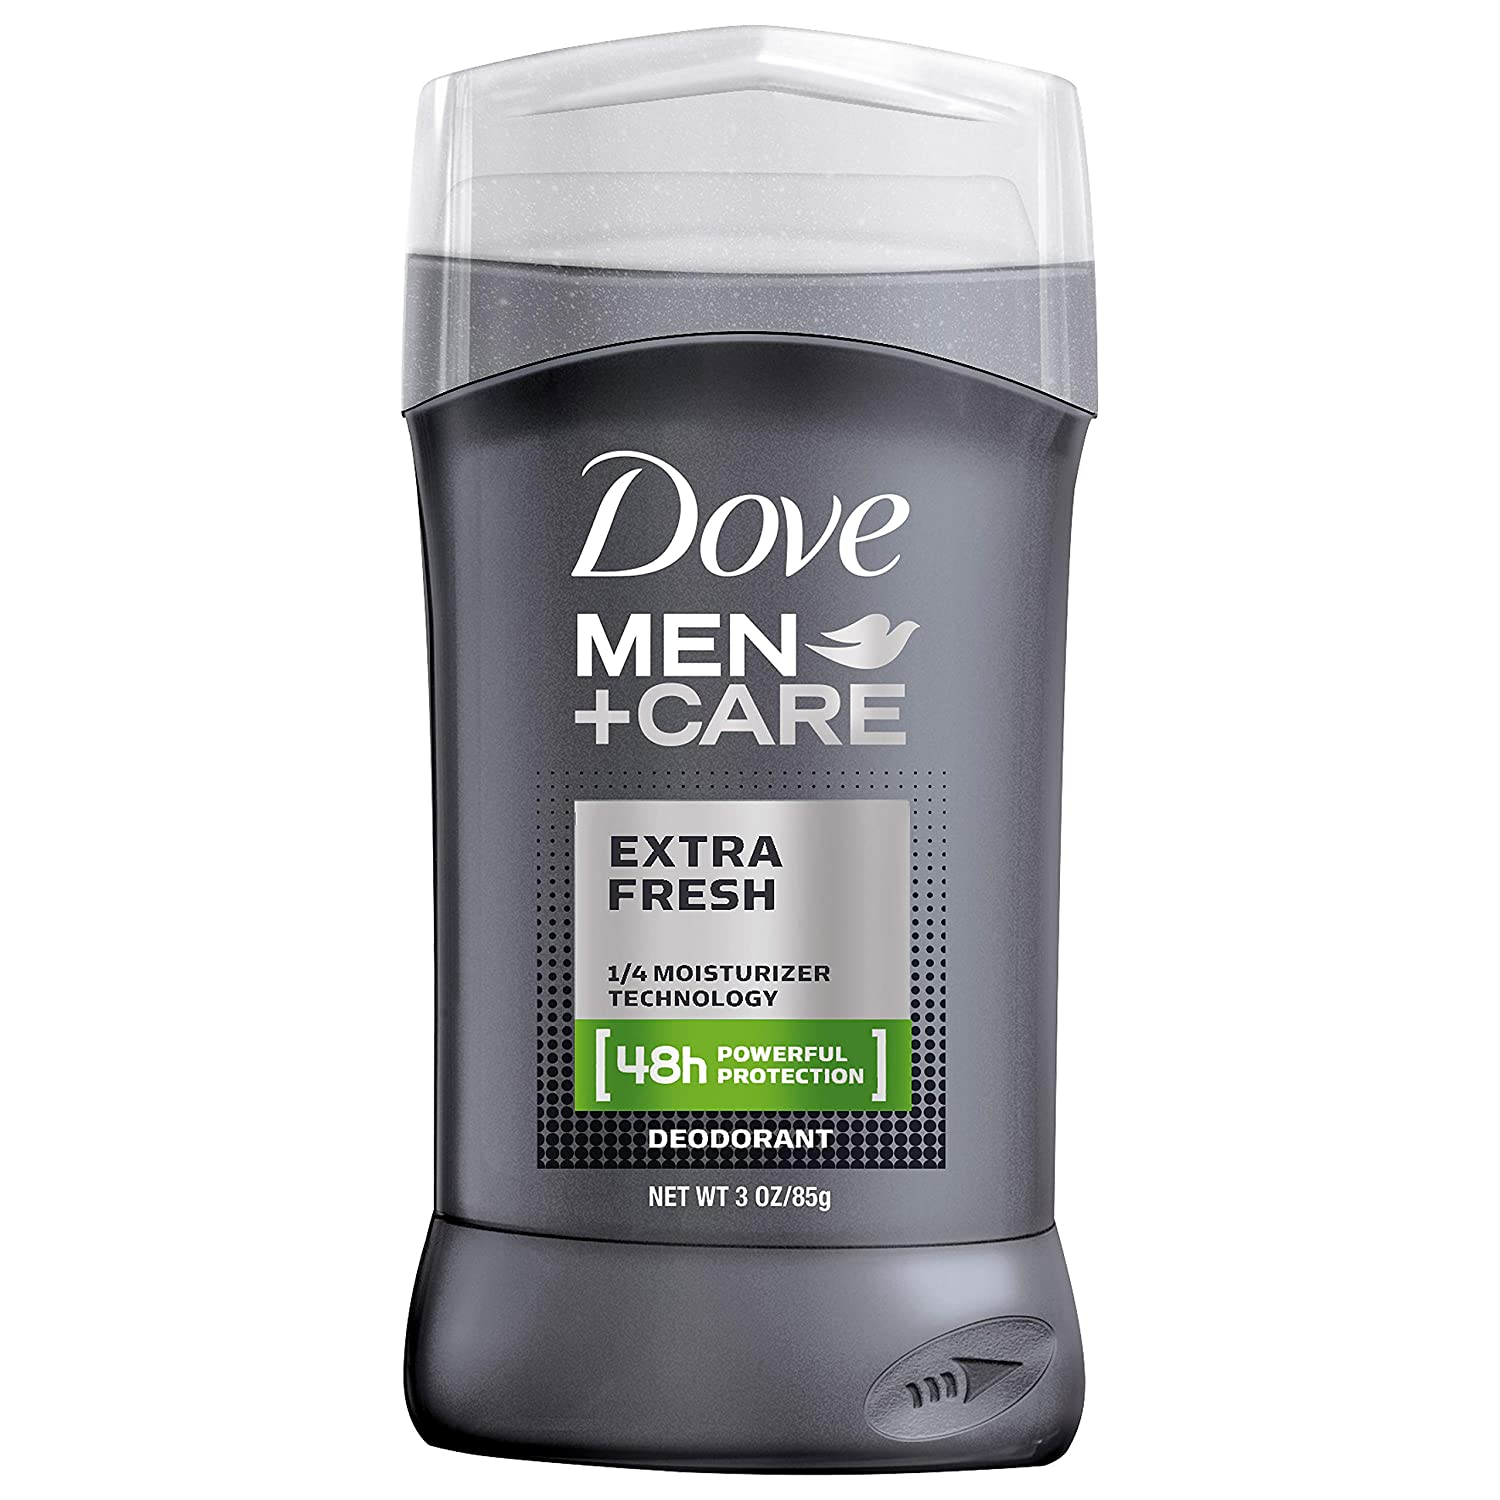 Dove Men + Care Deodorant Stick, Extra Fresh 3 oz (Pack of 10)